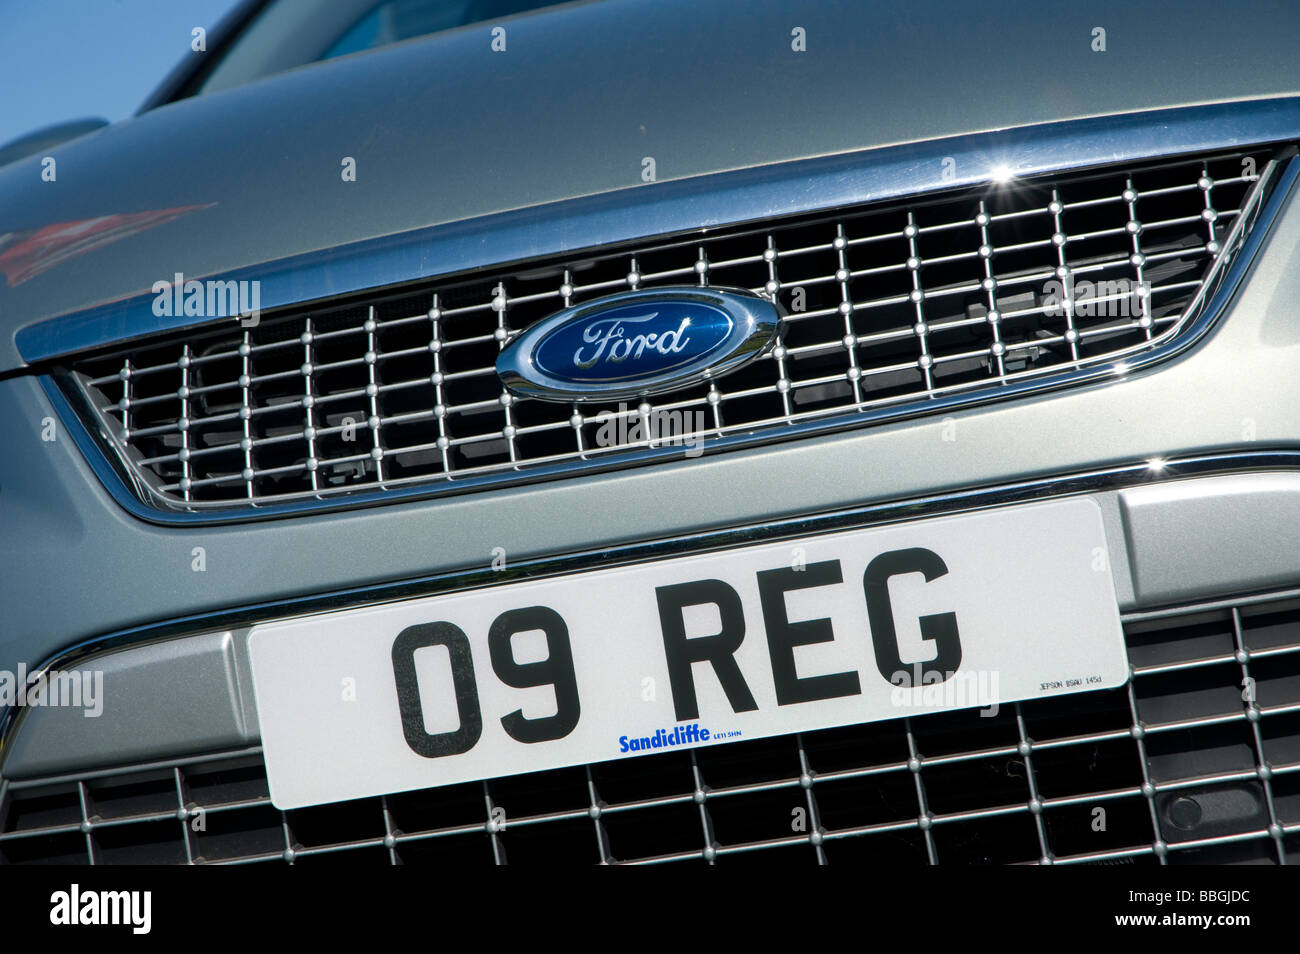 Close up detail of the front of a new ford car with a 2009 registration plate - Stock Image